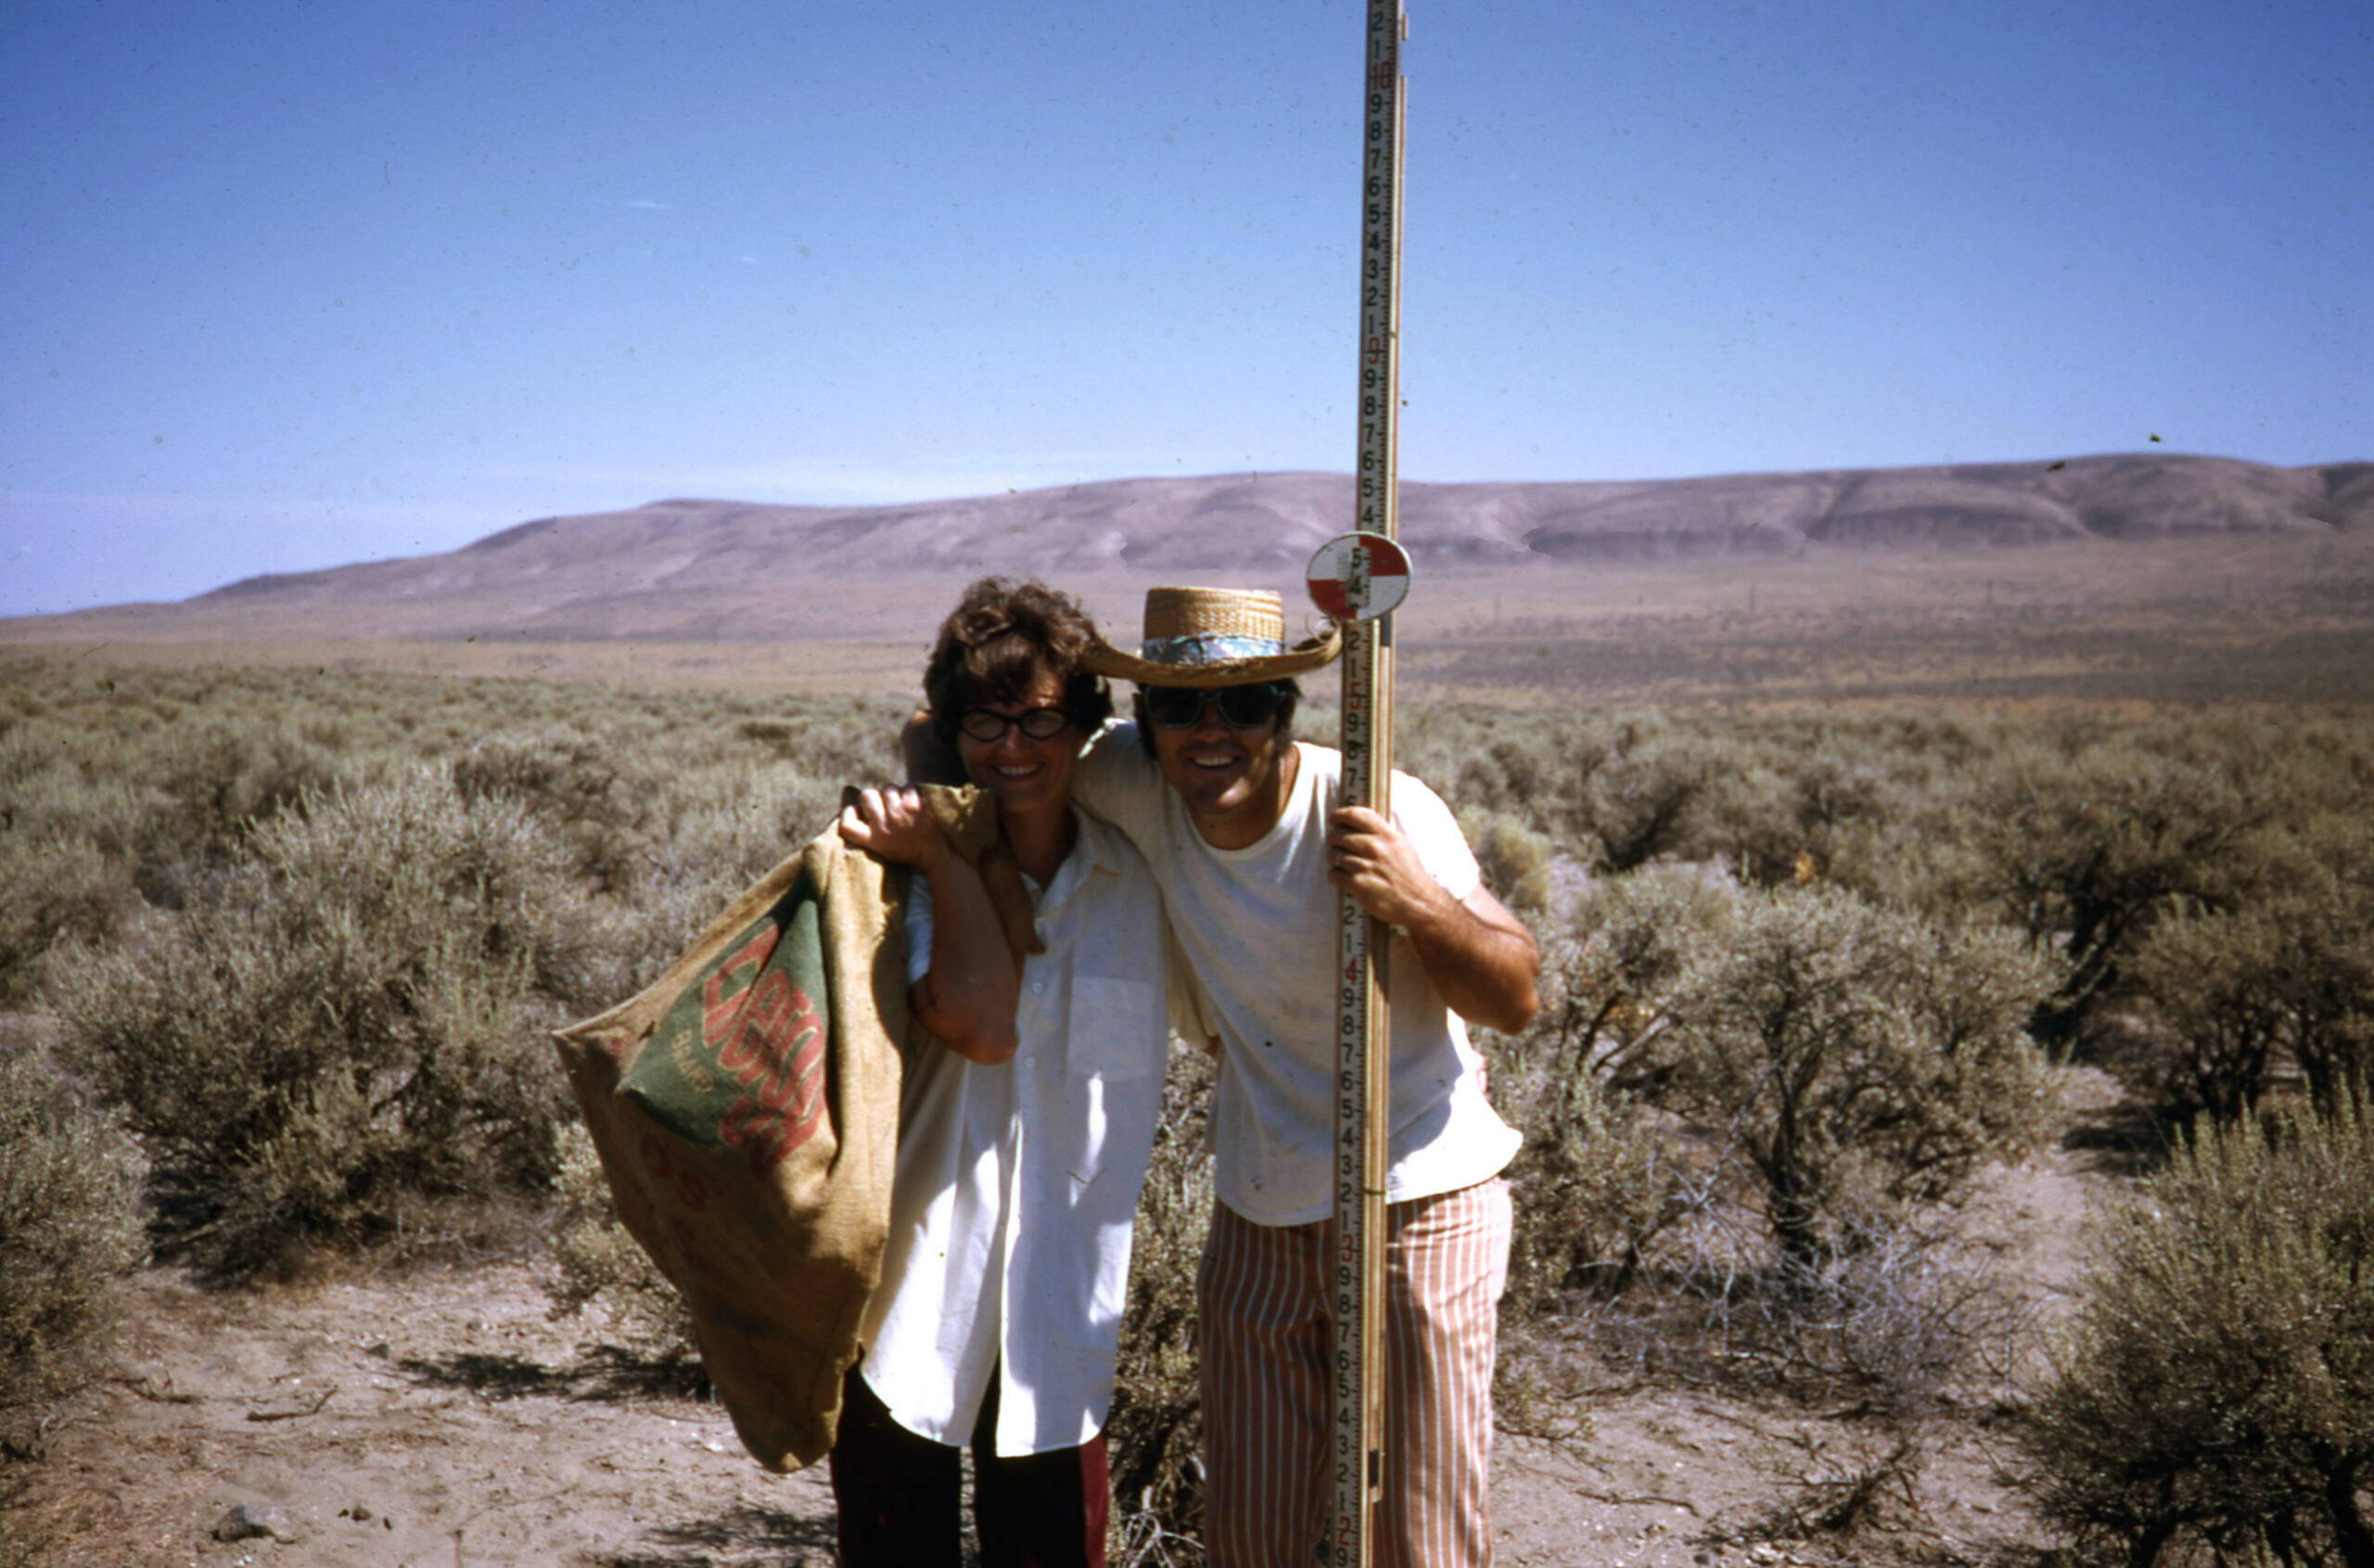 A man and a woman smile in a sagebrush field with rolling hills and blue sky behind. The woman holds a burlap sack over her shoulder and the man's arm is around her neck and holds a tall square measuring pole.